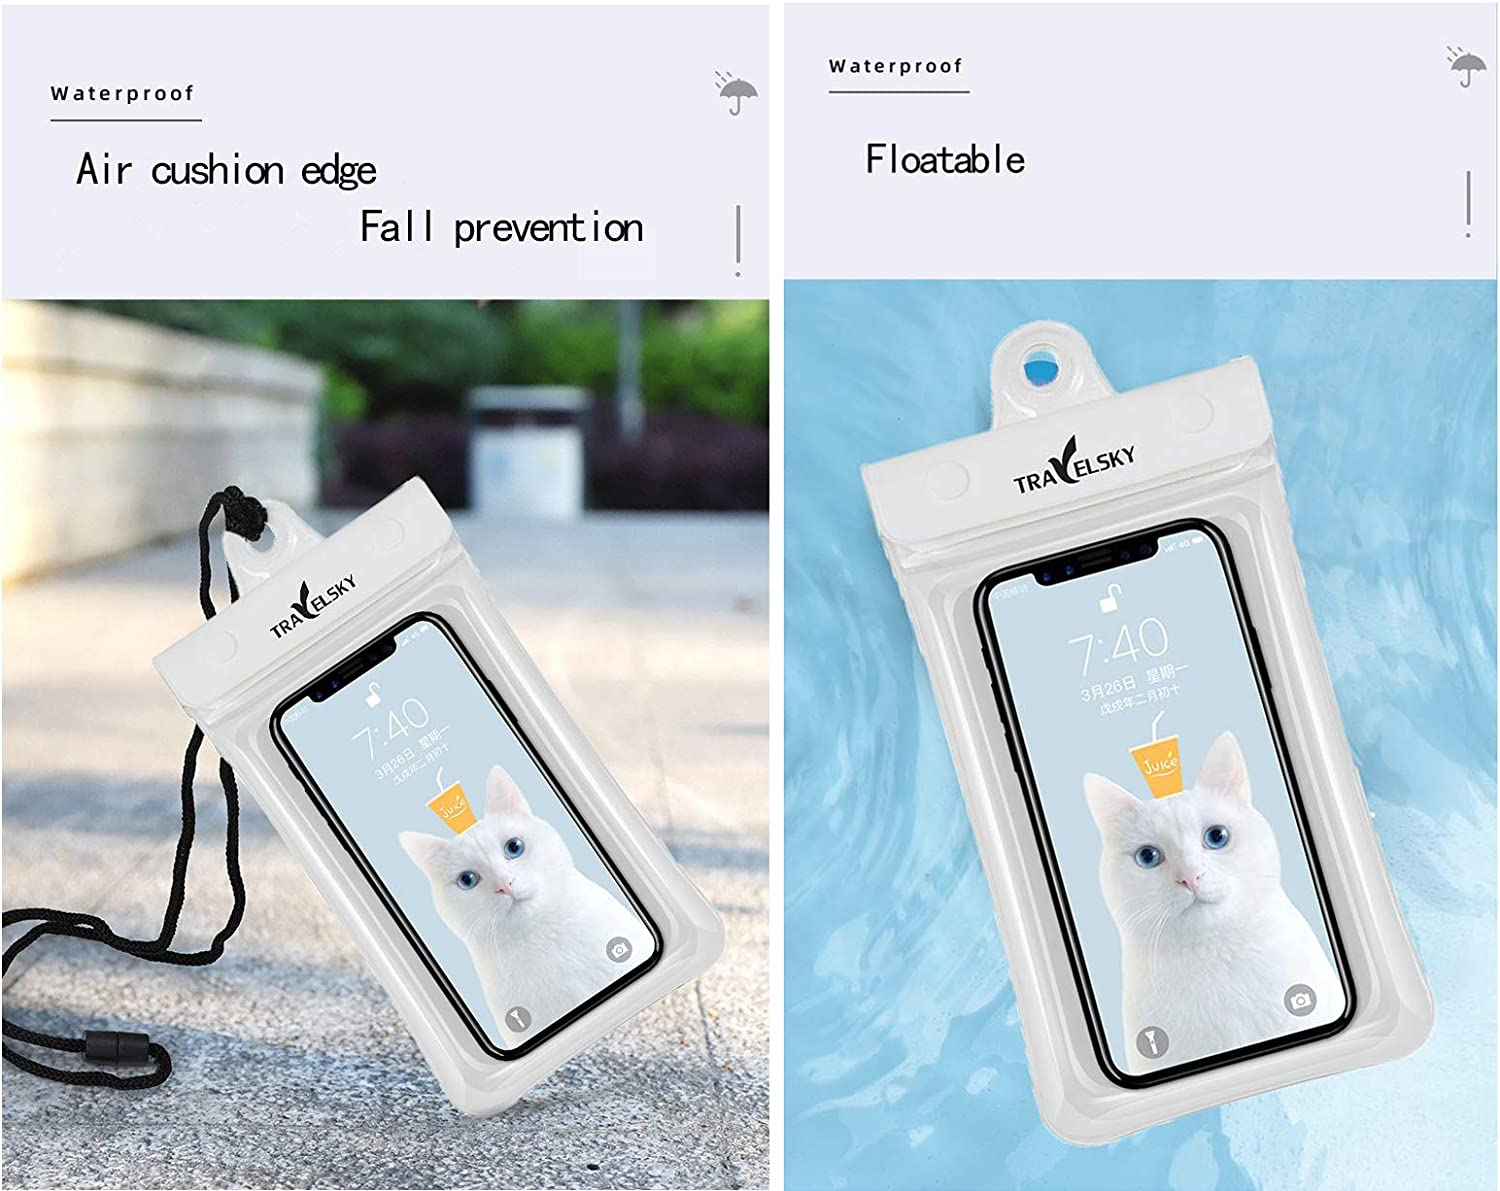 Waterproof Phone Pouch TPU Air Bag 7.21 inch Float able Four Layer Seal Touch Screen Mobile Phone Arm Bags,for Outdoor,Diving(30 Meters),Rafting,Swimming,Surfing(White)